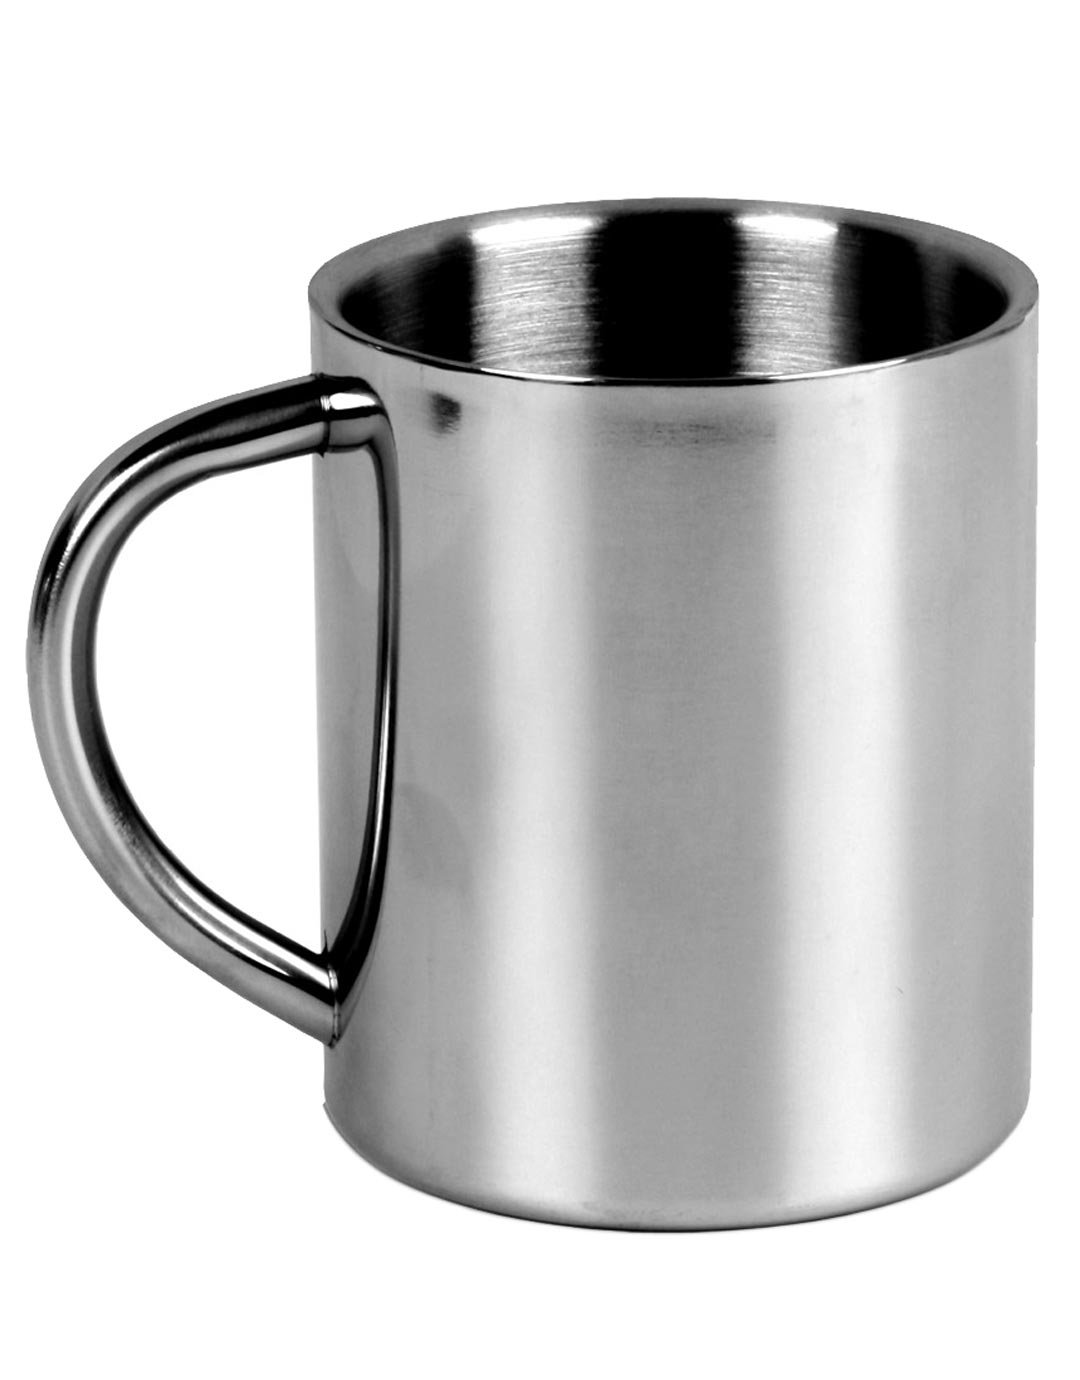 Stainless Camping Mug Lifeventure color steel